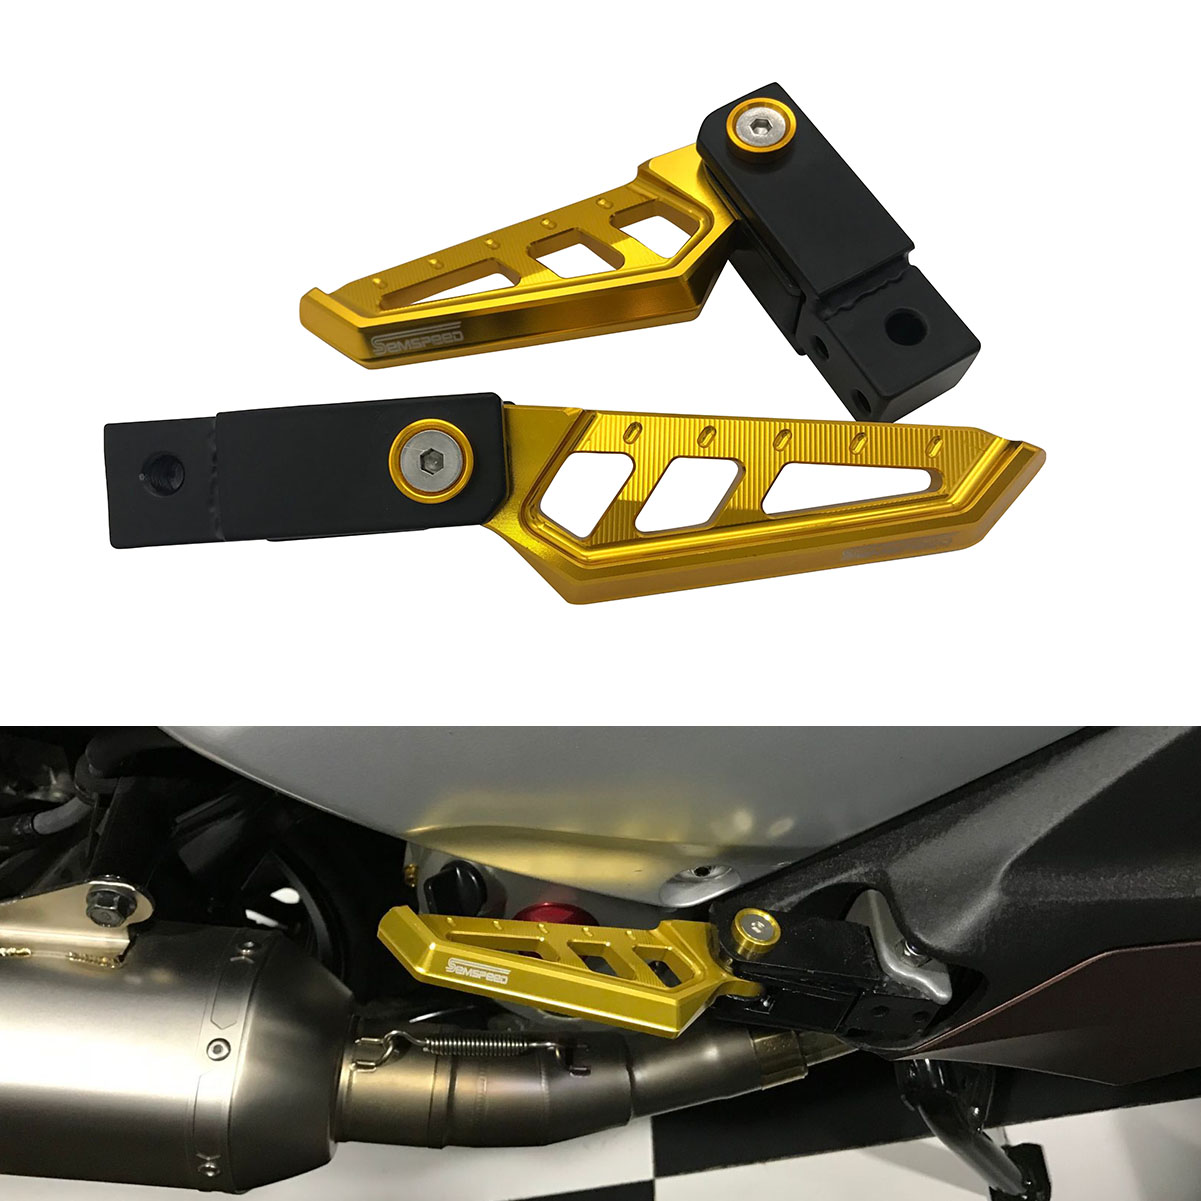 Universal Cnc Motorcycle Rotatable Rear Footrest For Honda Foot Peg Plate Forza300 250 125 Grom/msx125 Cbr600rr/900rr/1000rr Superior Materials Covers & Ornamental Mouldings